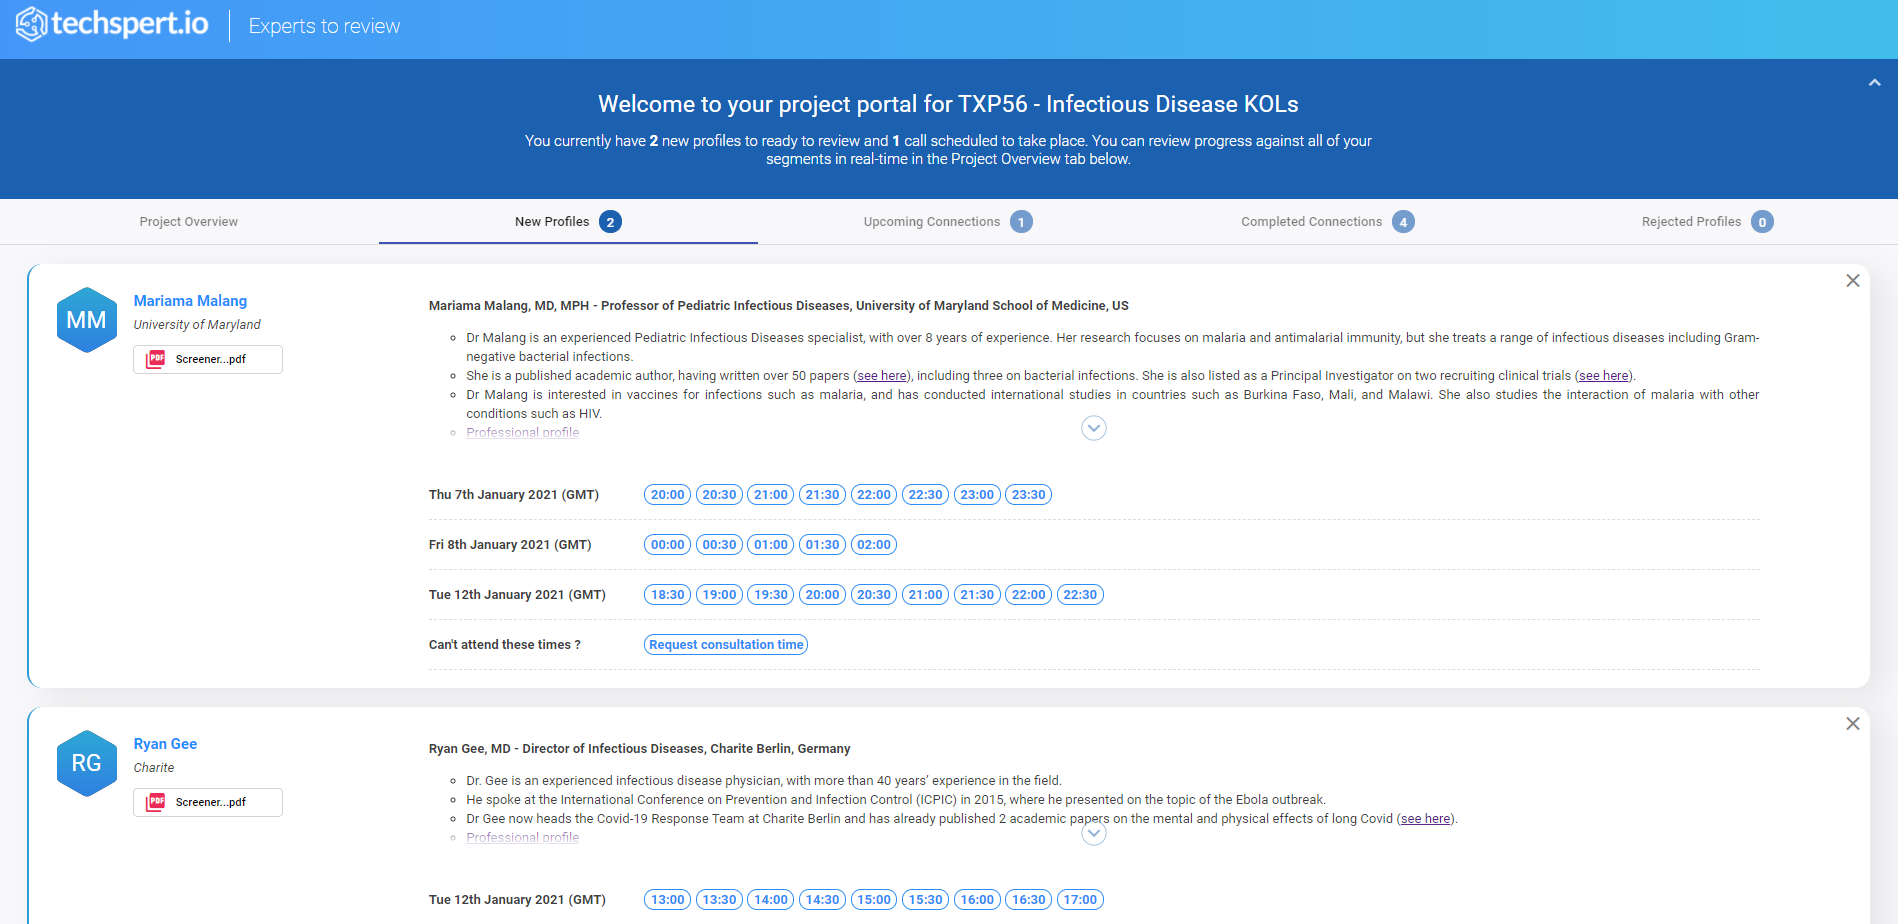 A screenshot of new profiles to review on the portal